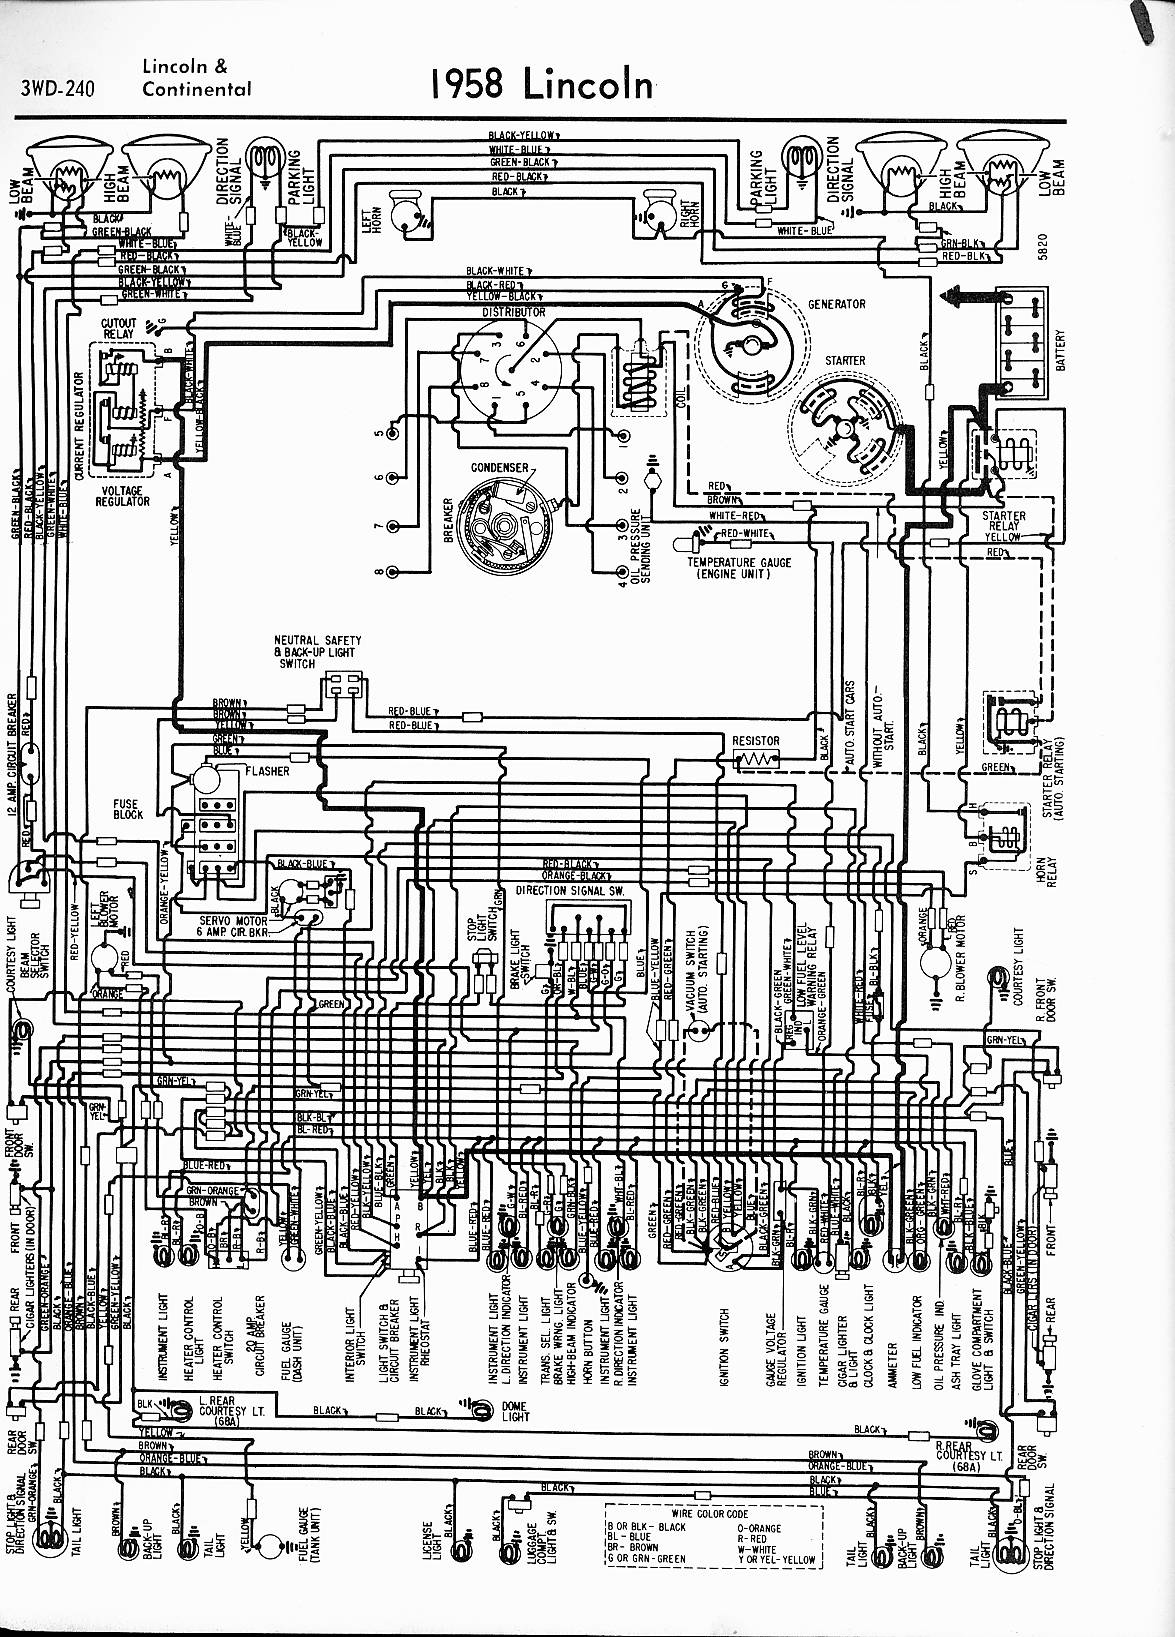 hight resolution of 62 lincoln wiring diagram wiring diagrams scematic 1996 saab 9000 wiring diagram 1963 lincoln continental wiring diagram